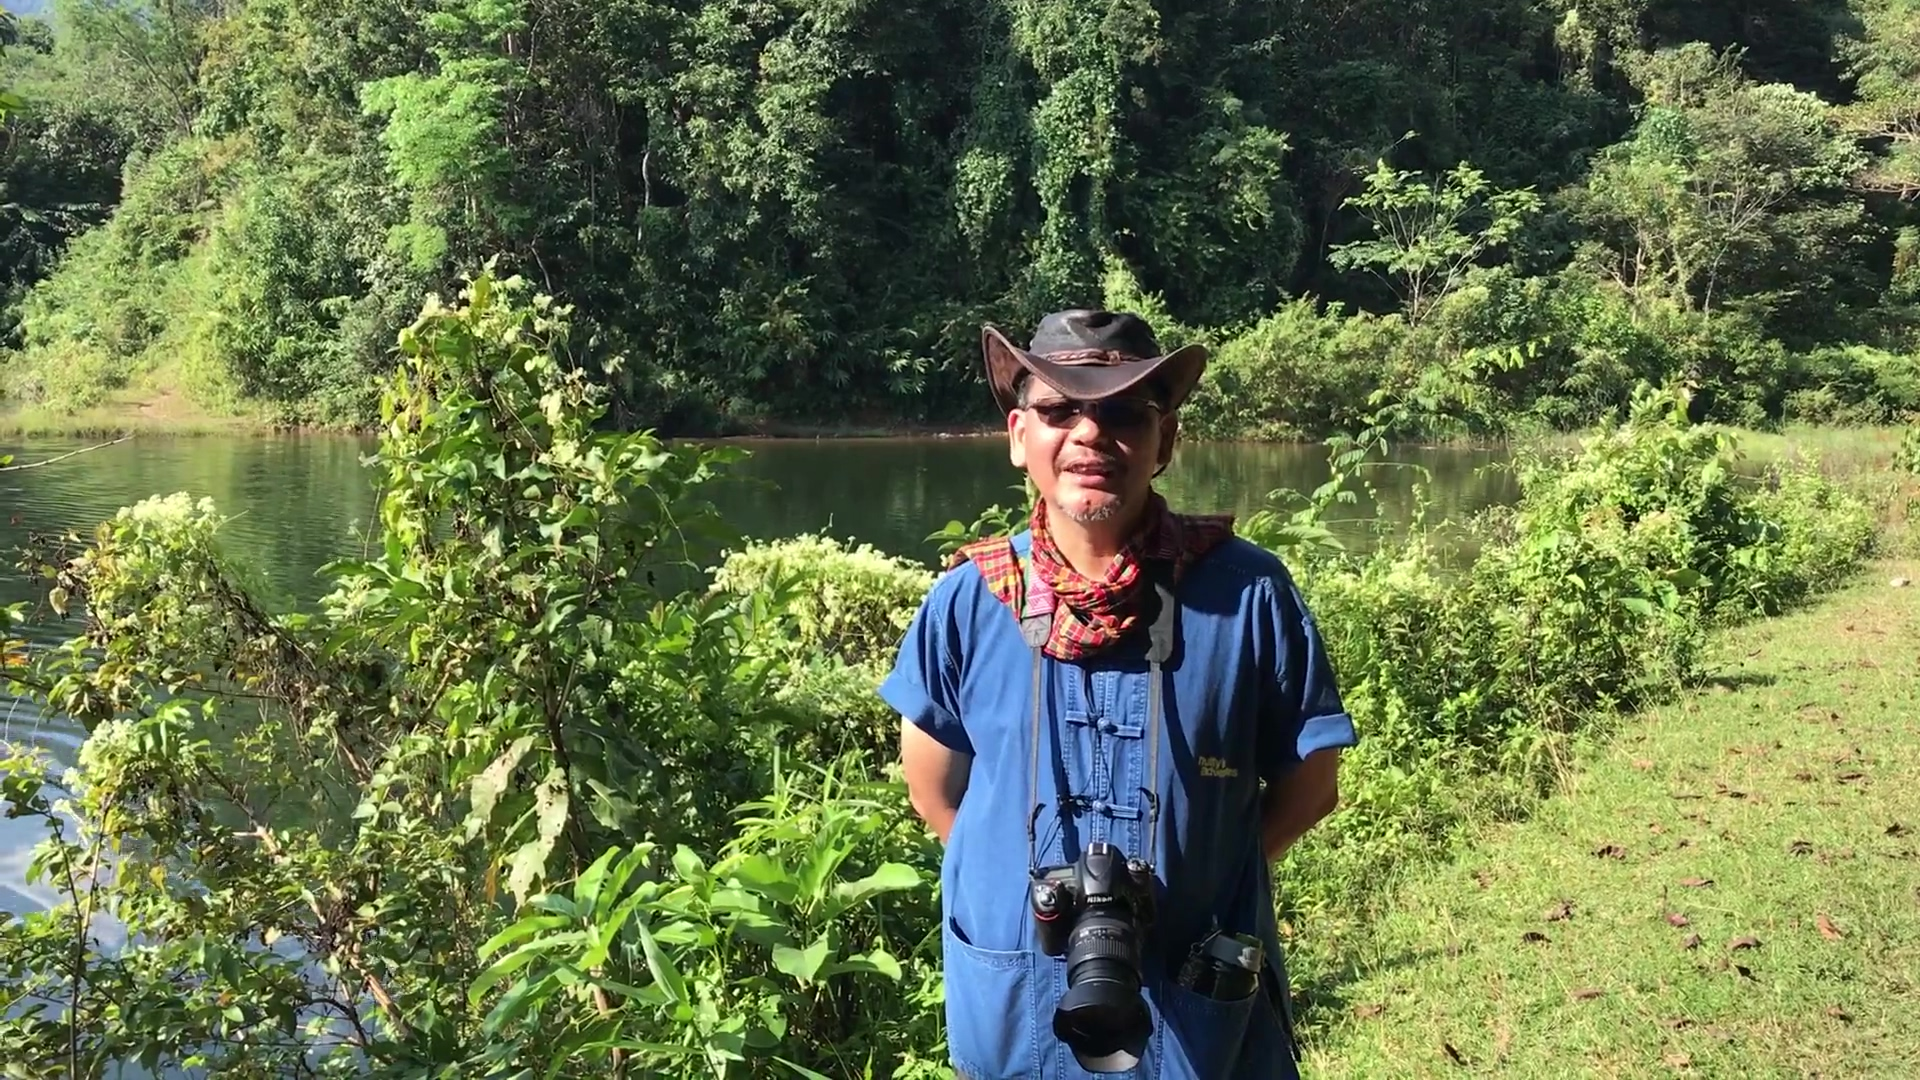 Interview with Nuttys Adventures, Community Based Tourism in Thailand